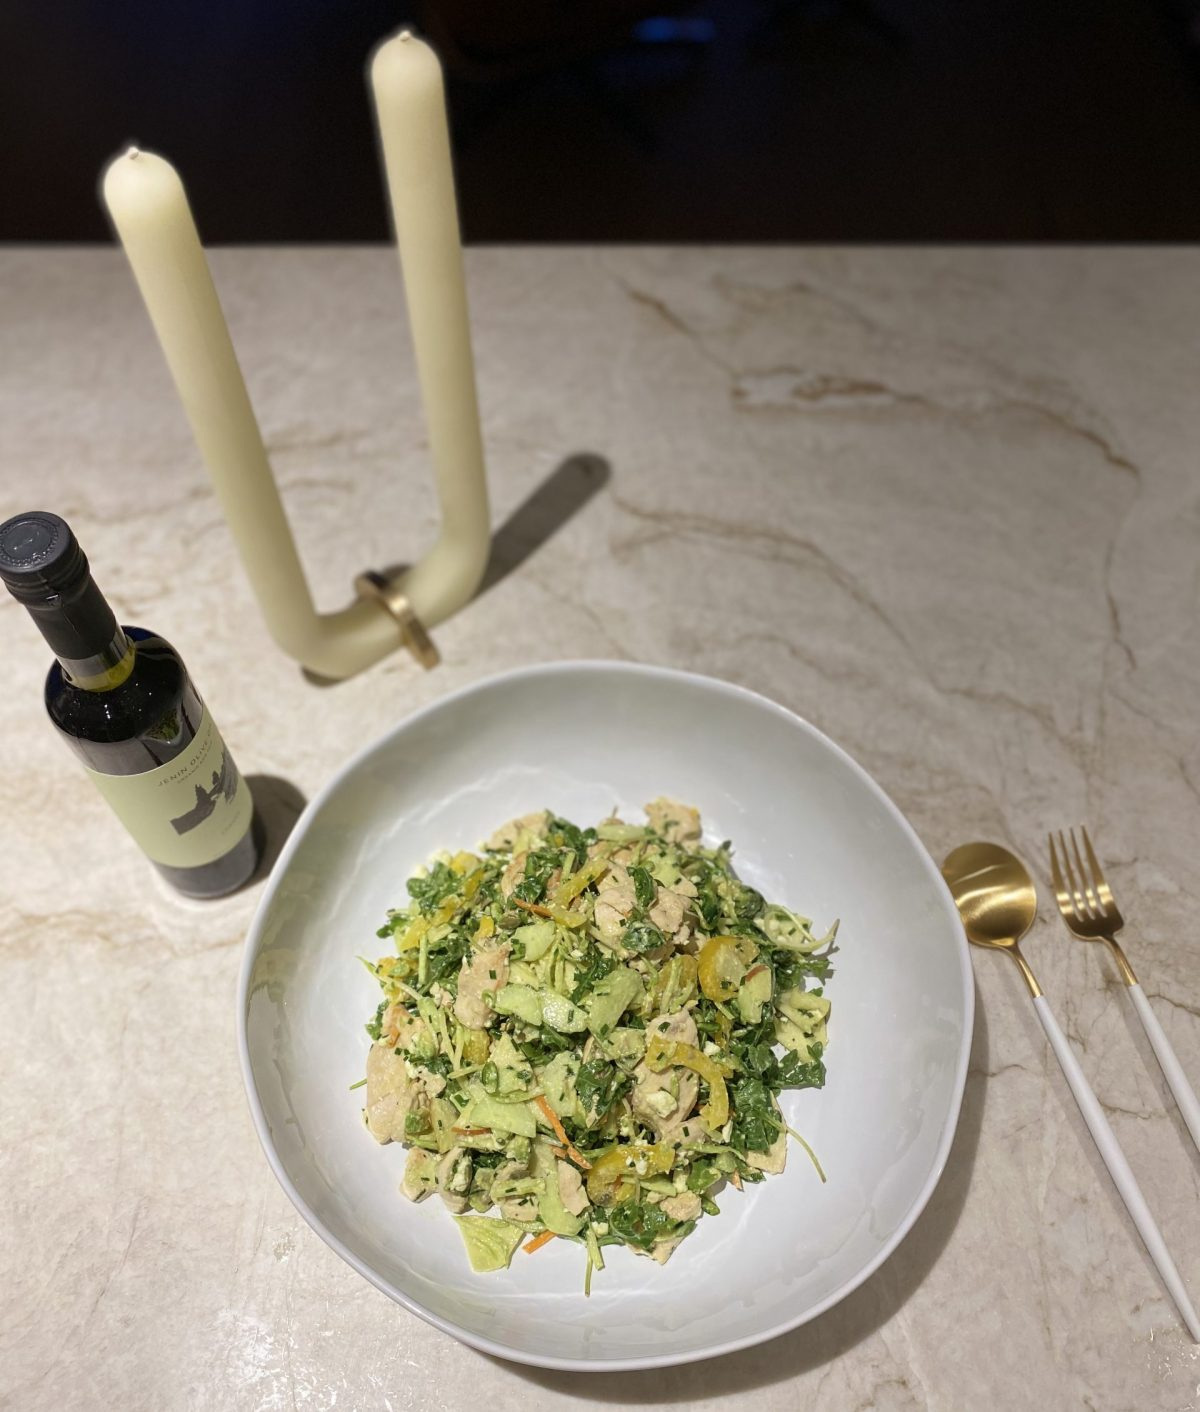 TANYA's FAVOURITE WARM CHICKEN SALAD WITH FETA